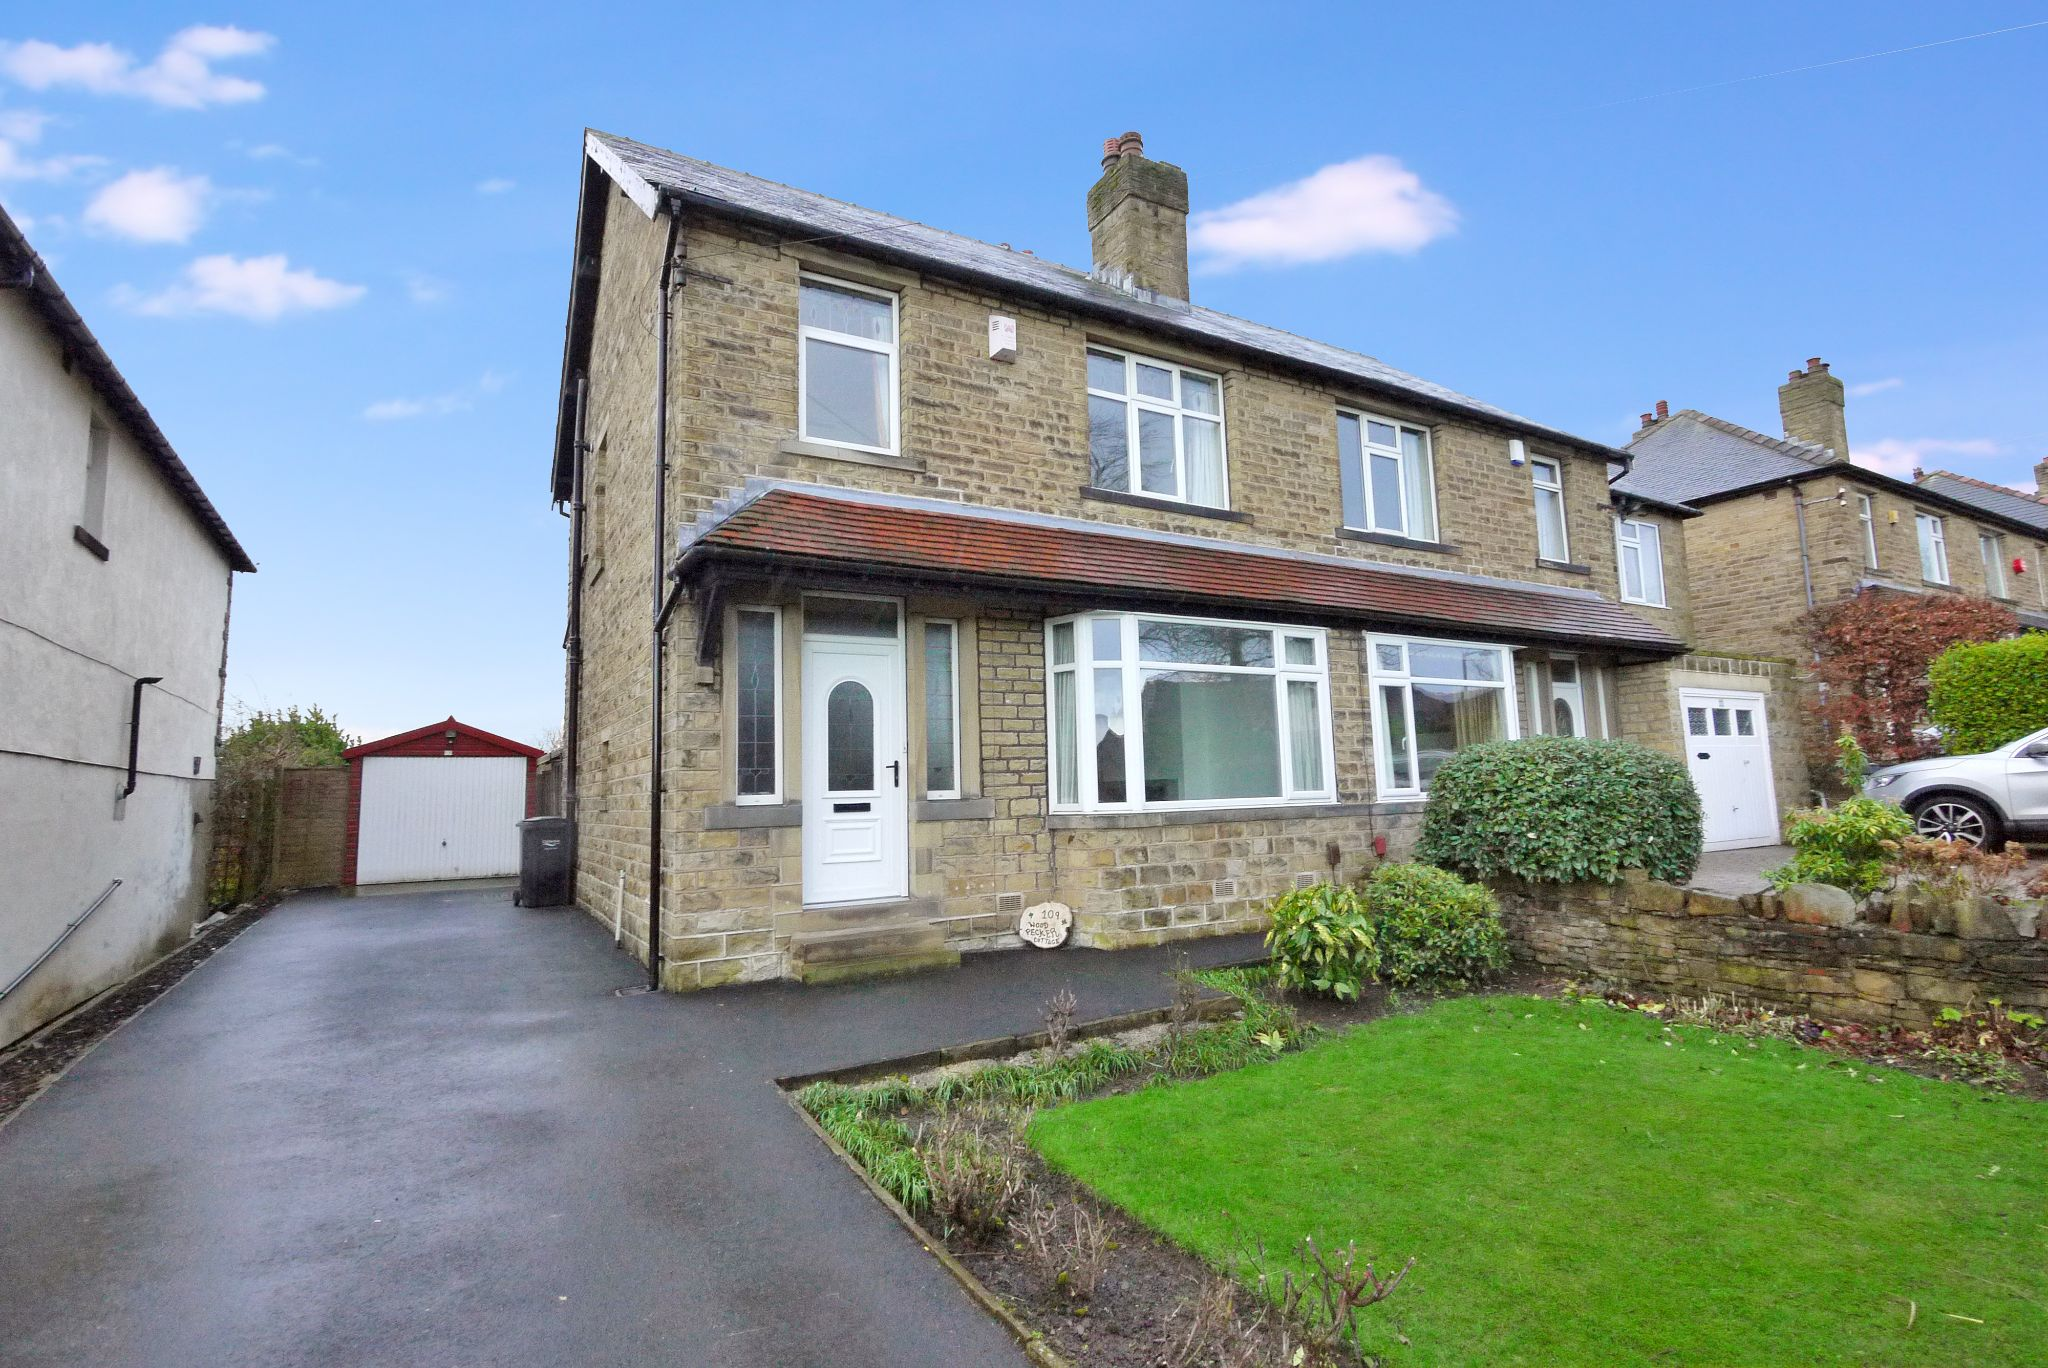 3 bedroom semi-detached house To Let in Brighouse - Photograph 1.